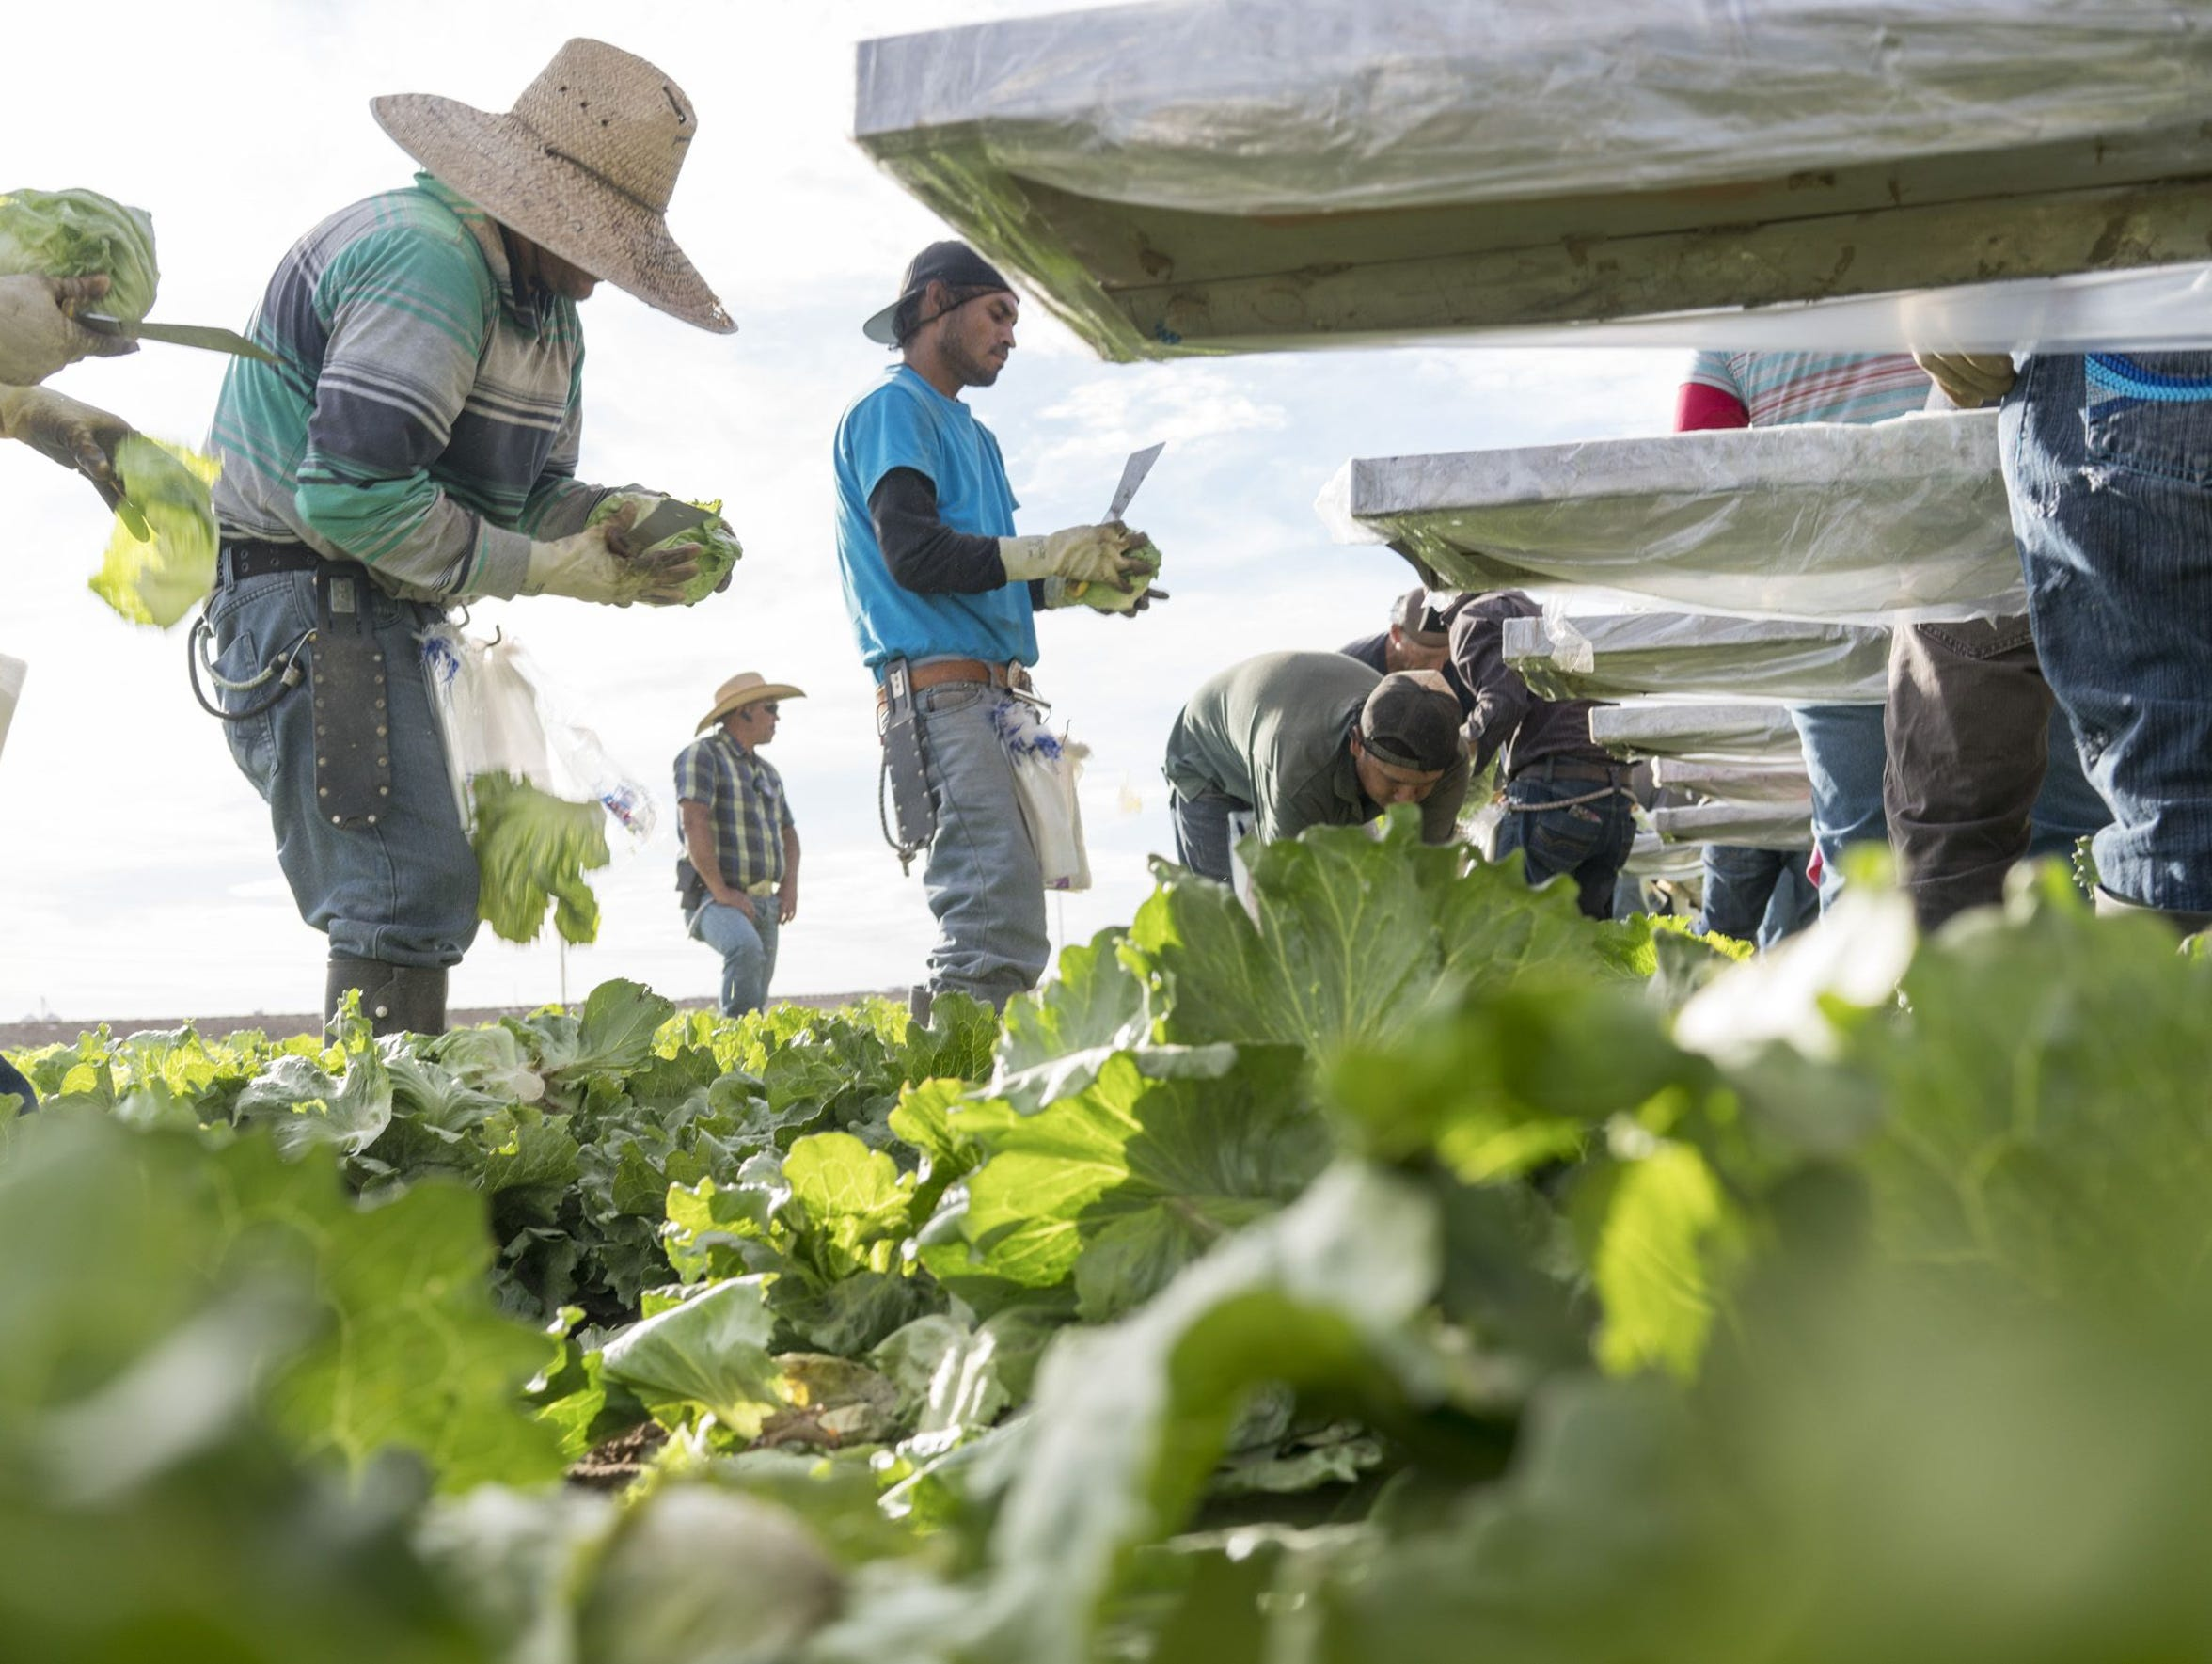 Migrant workers harvest iceberg lettuce at JV Farms